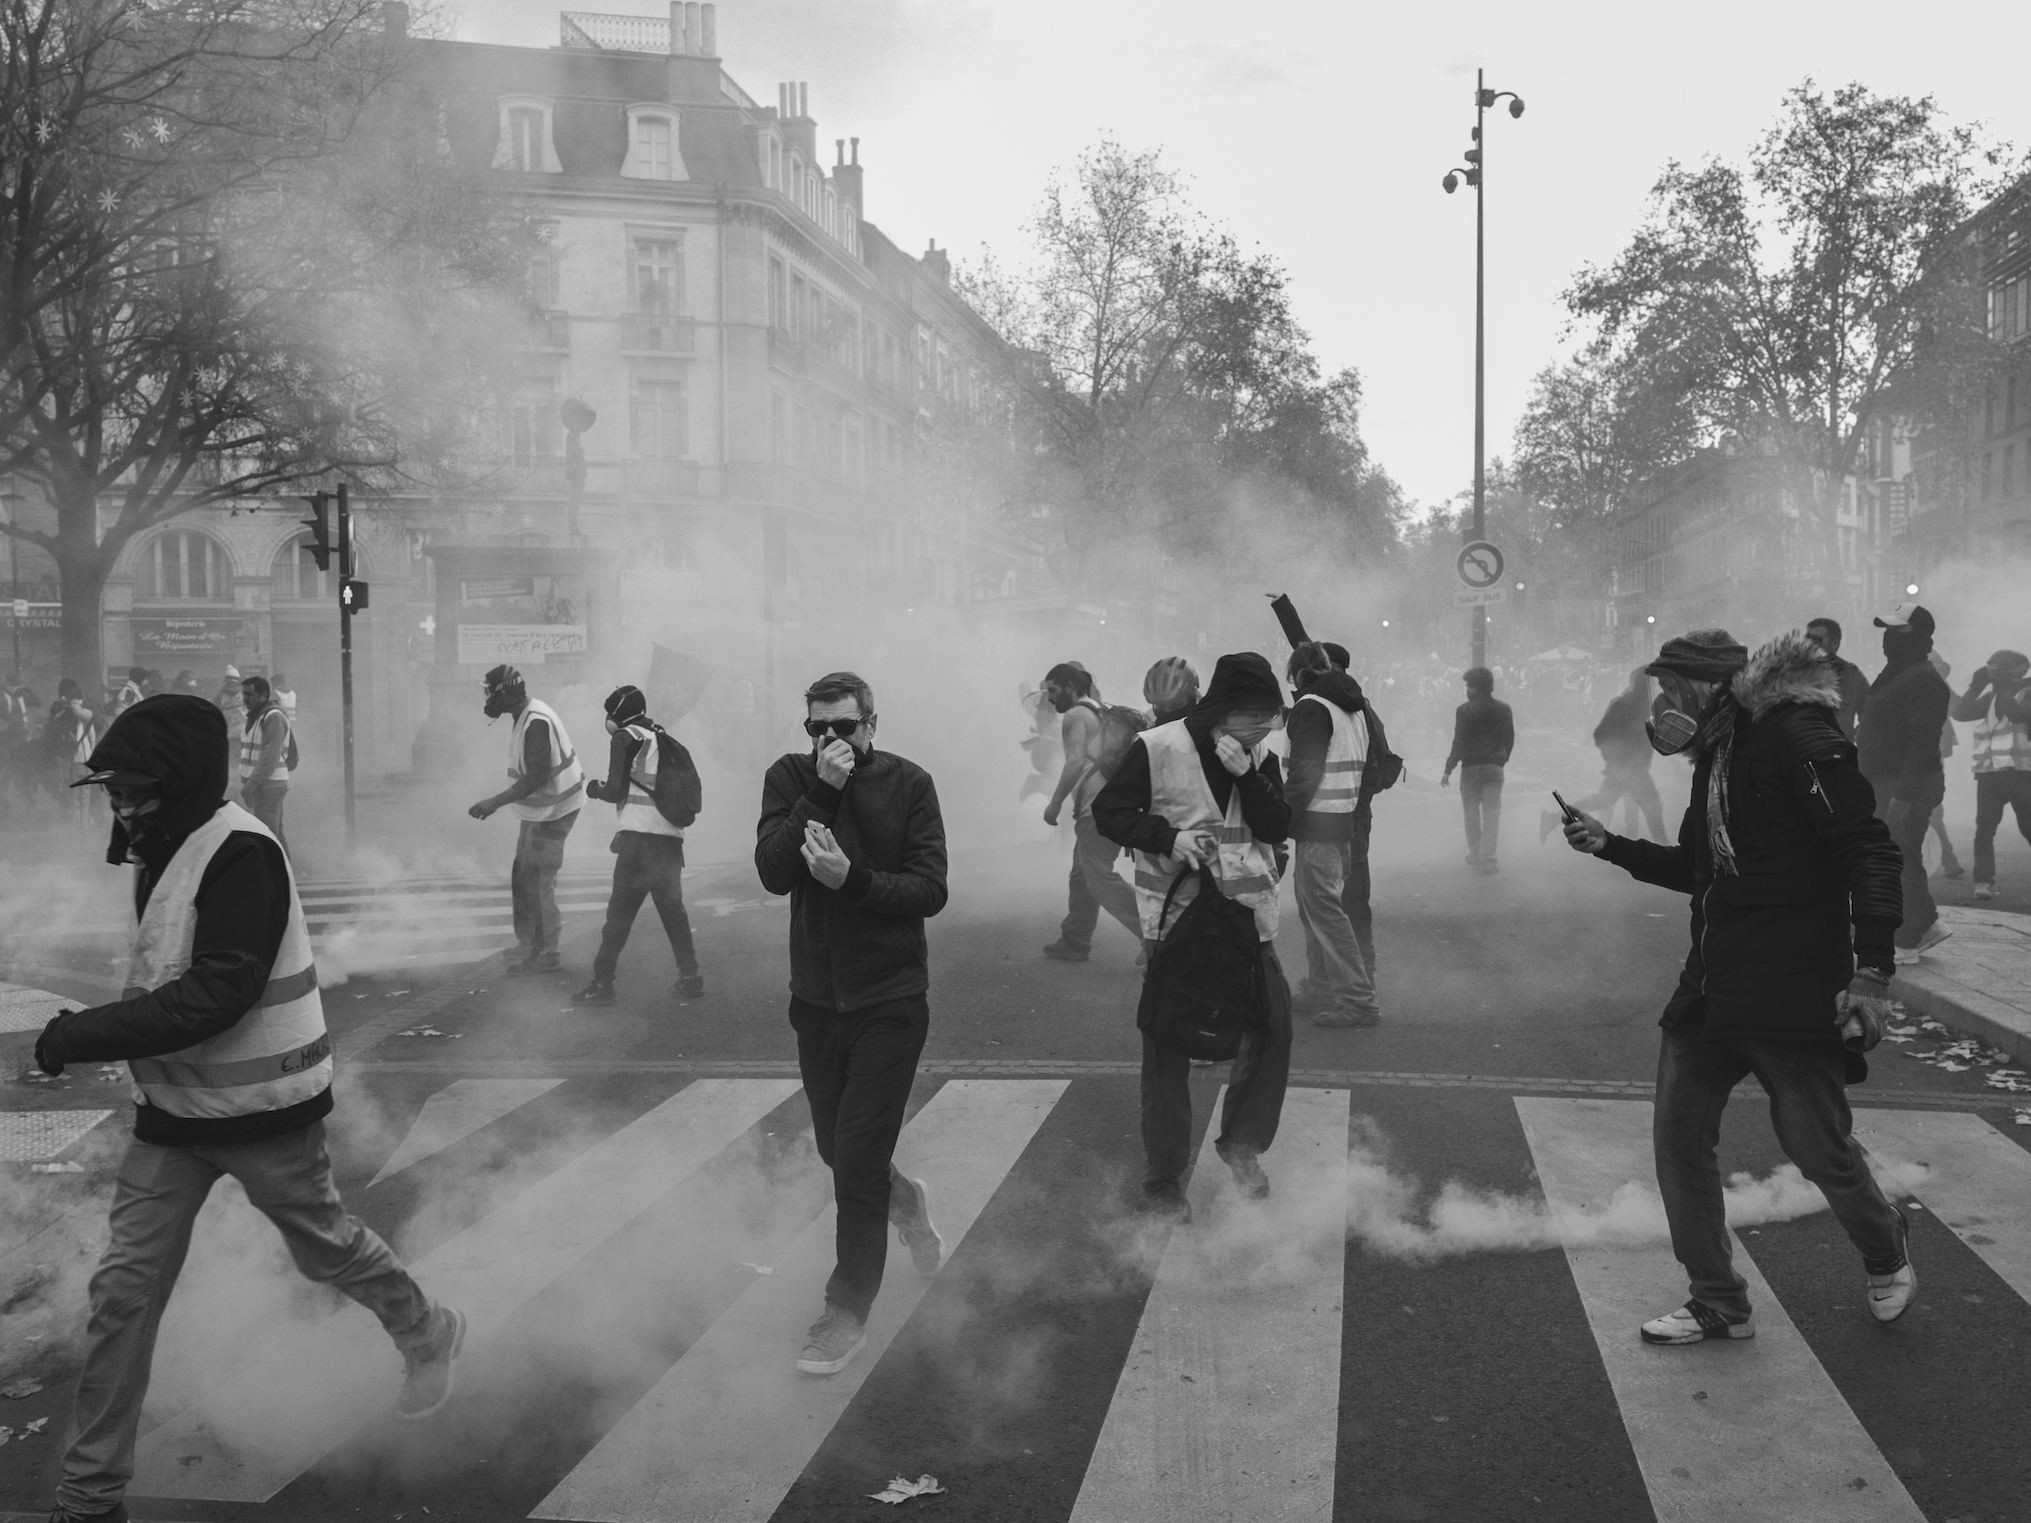 Yellow Vests riot in France 2018